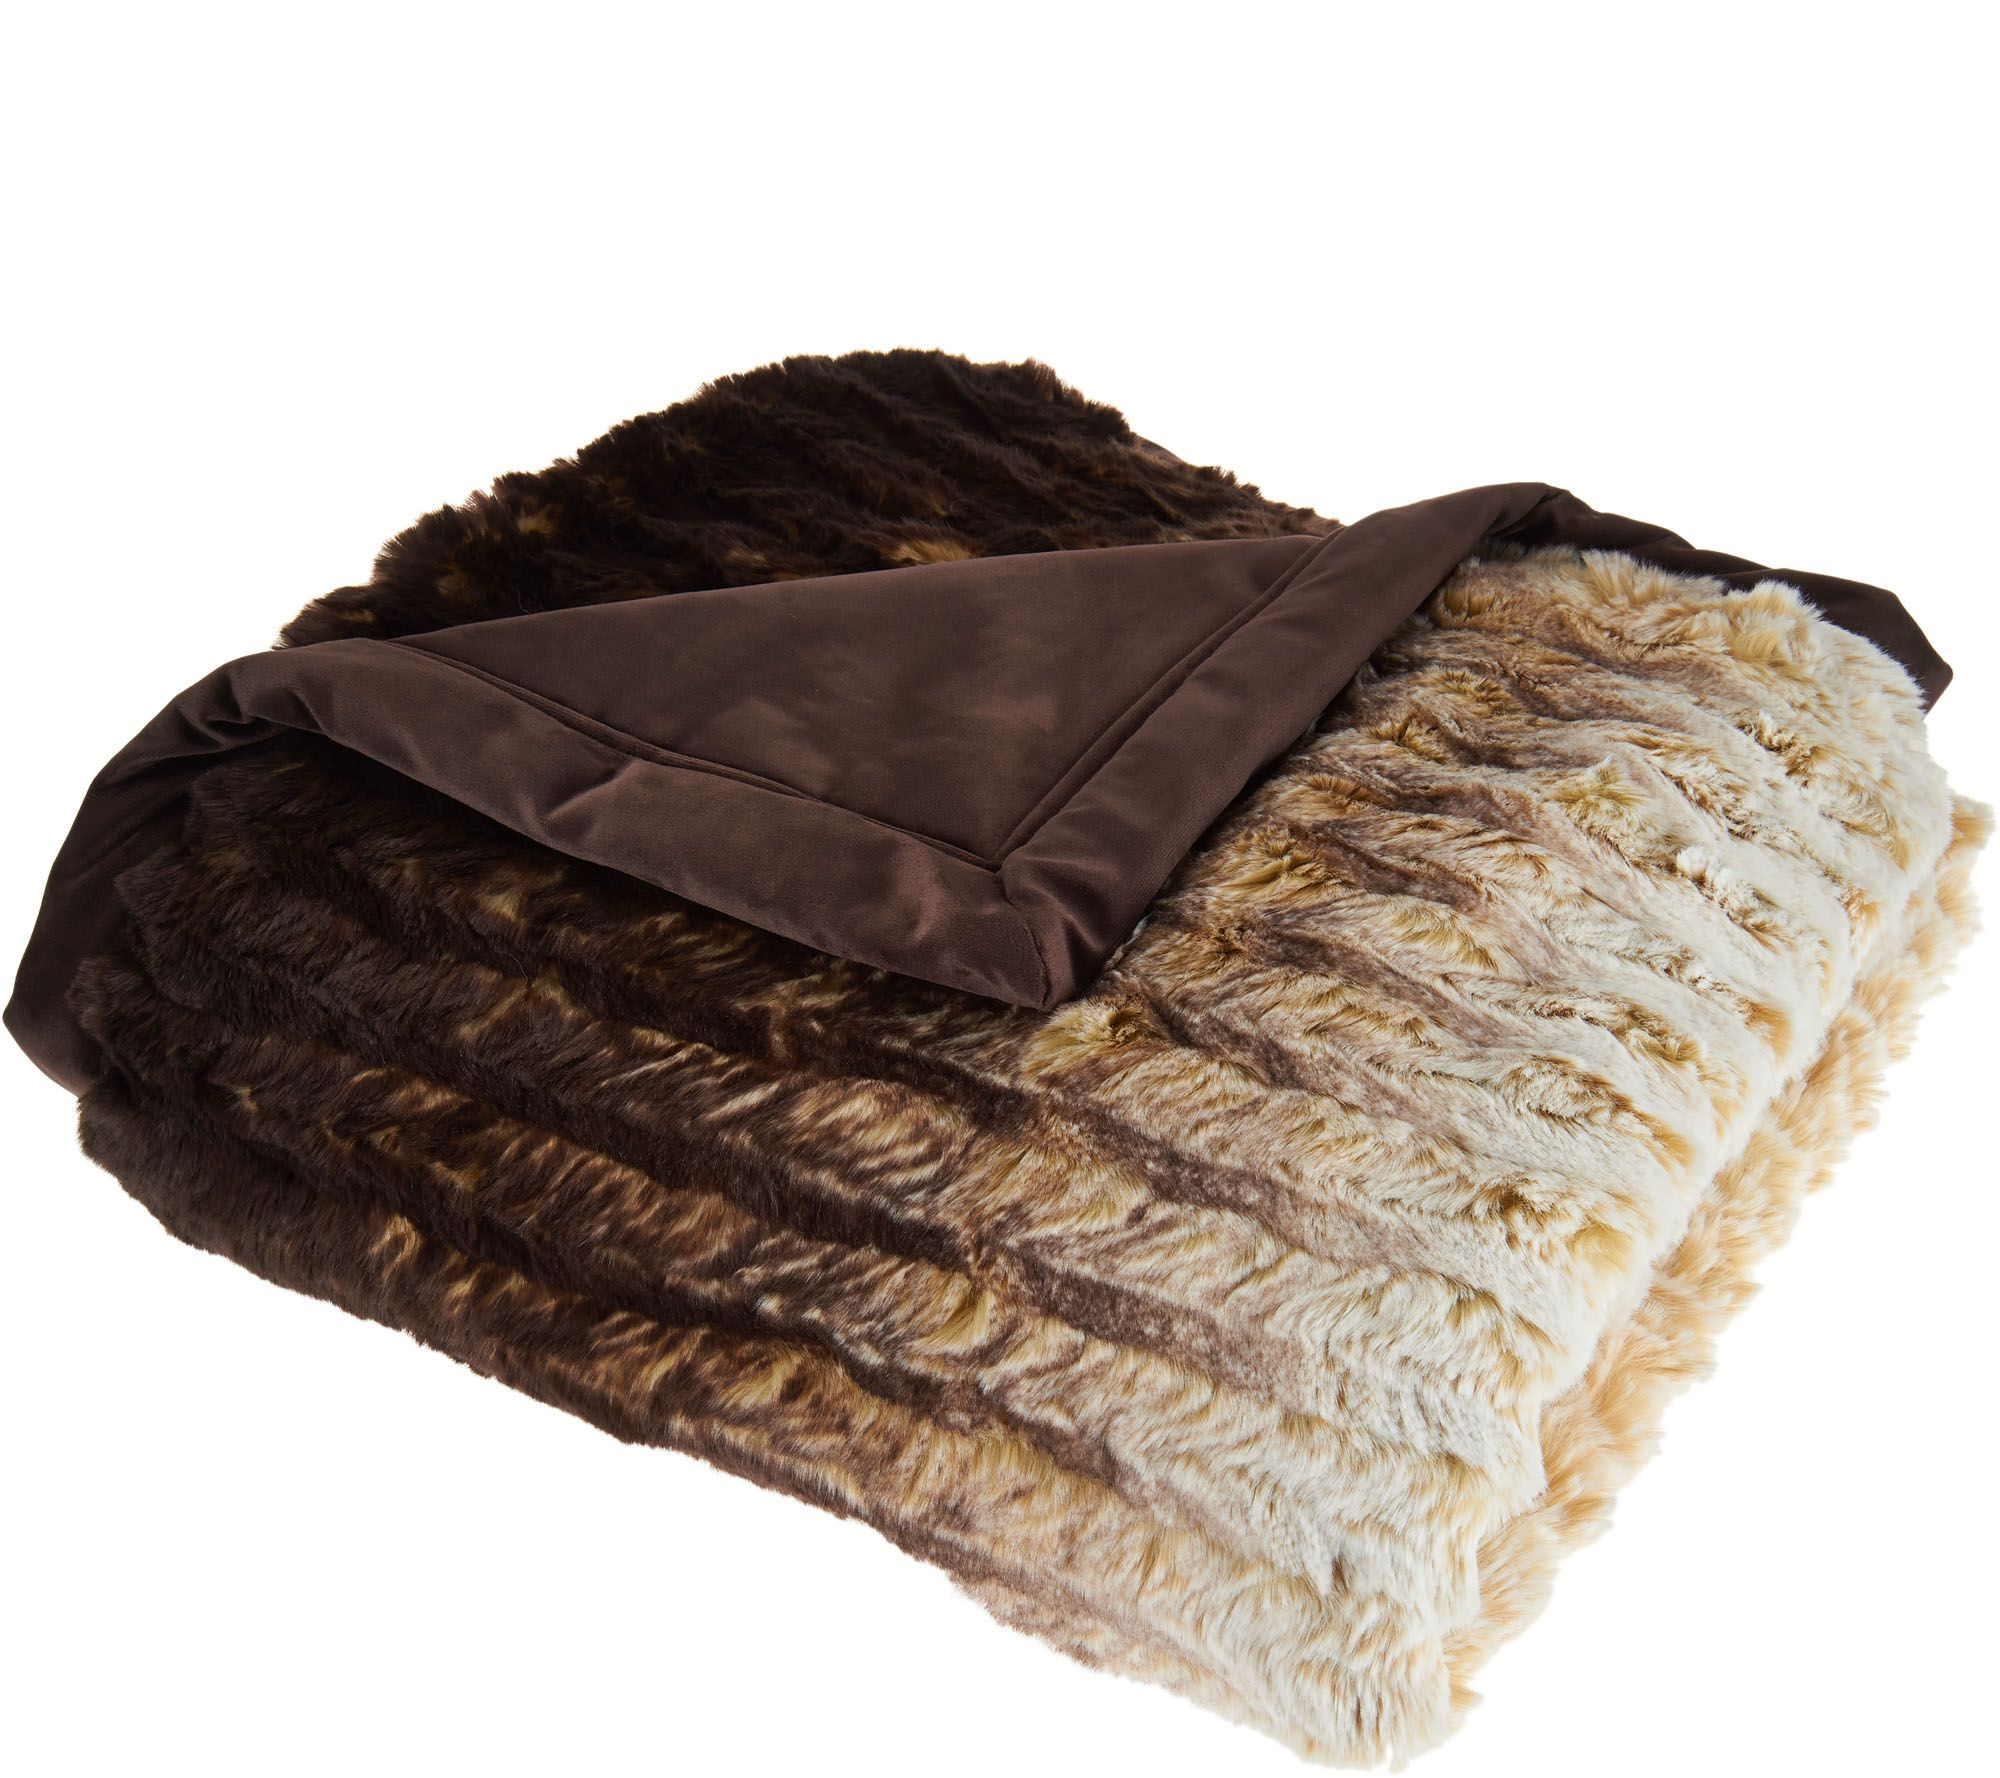 Throws Fleece Plush Faux Fur & More Throws — QVC